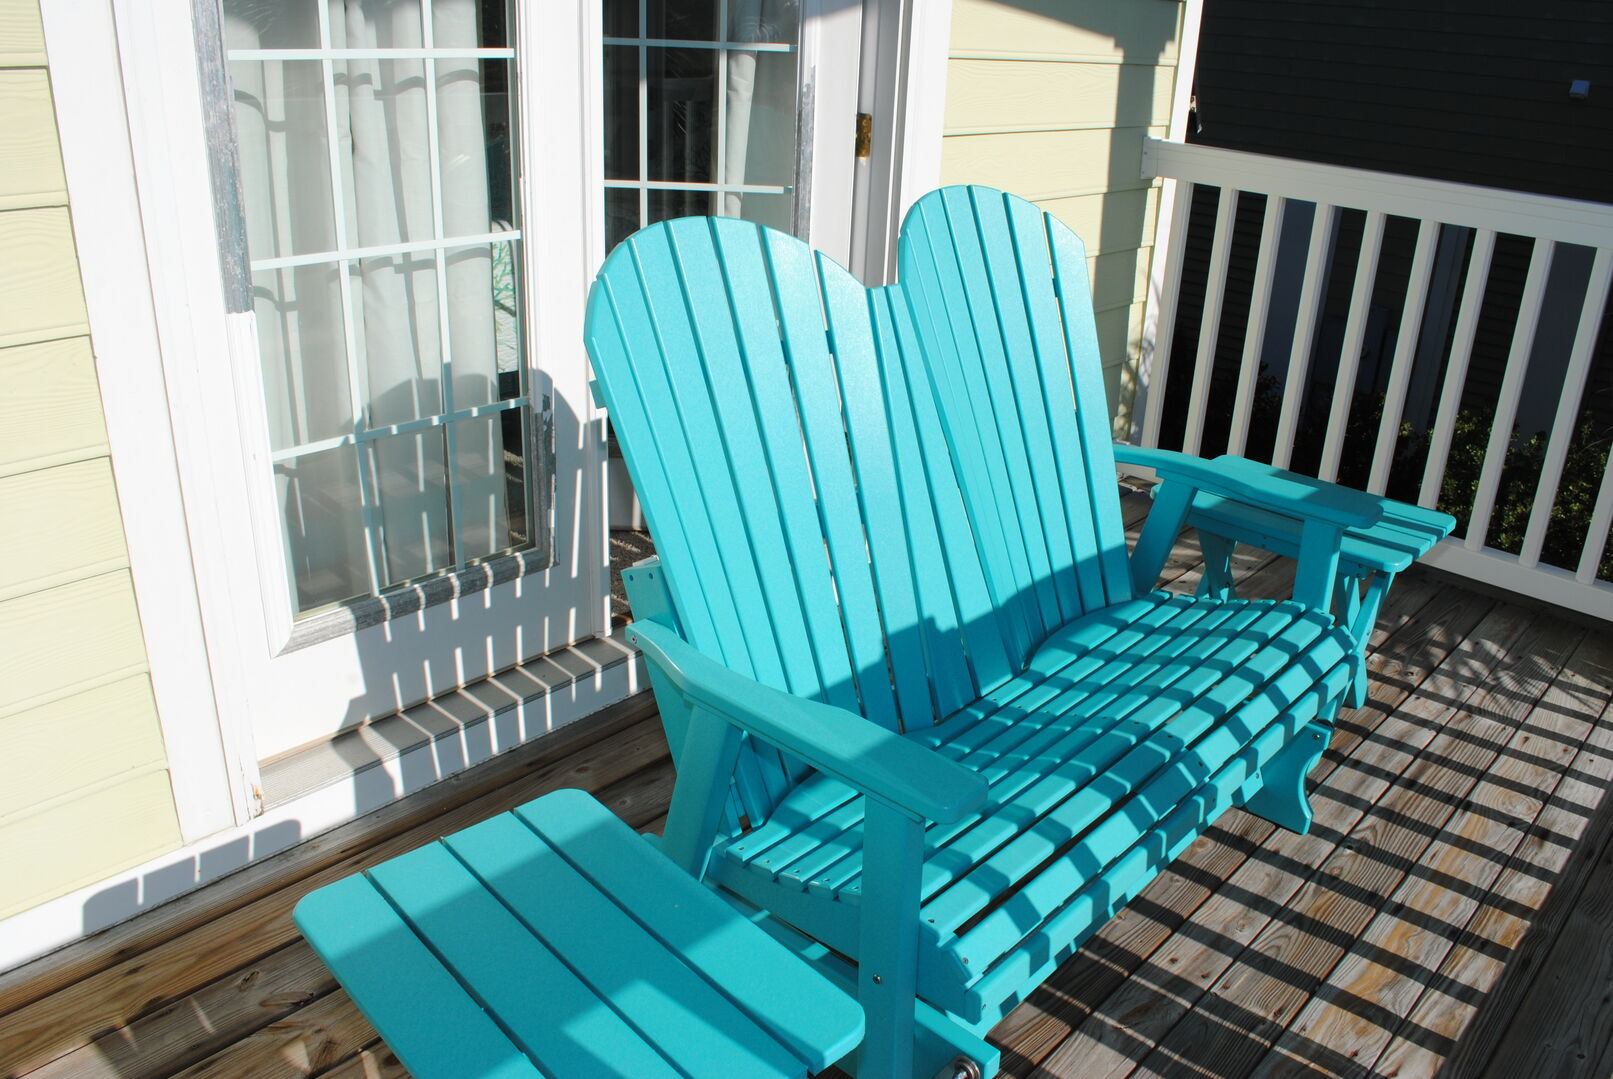 King Covered Deck - First Floor